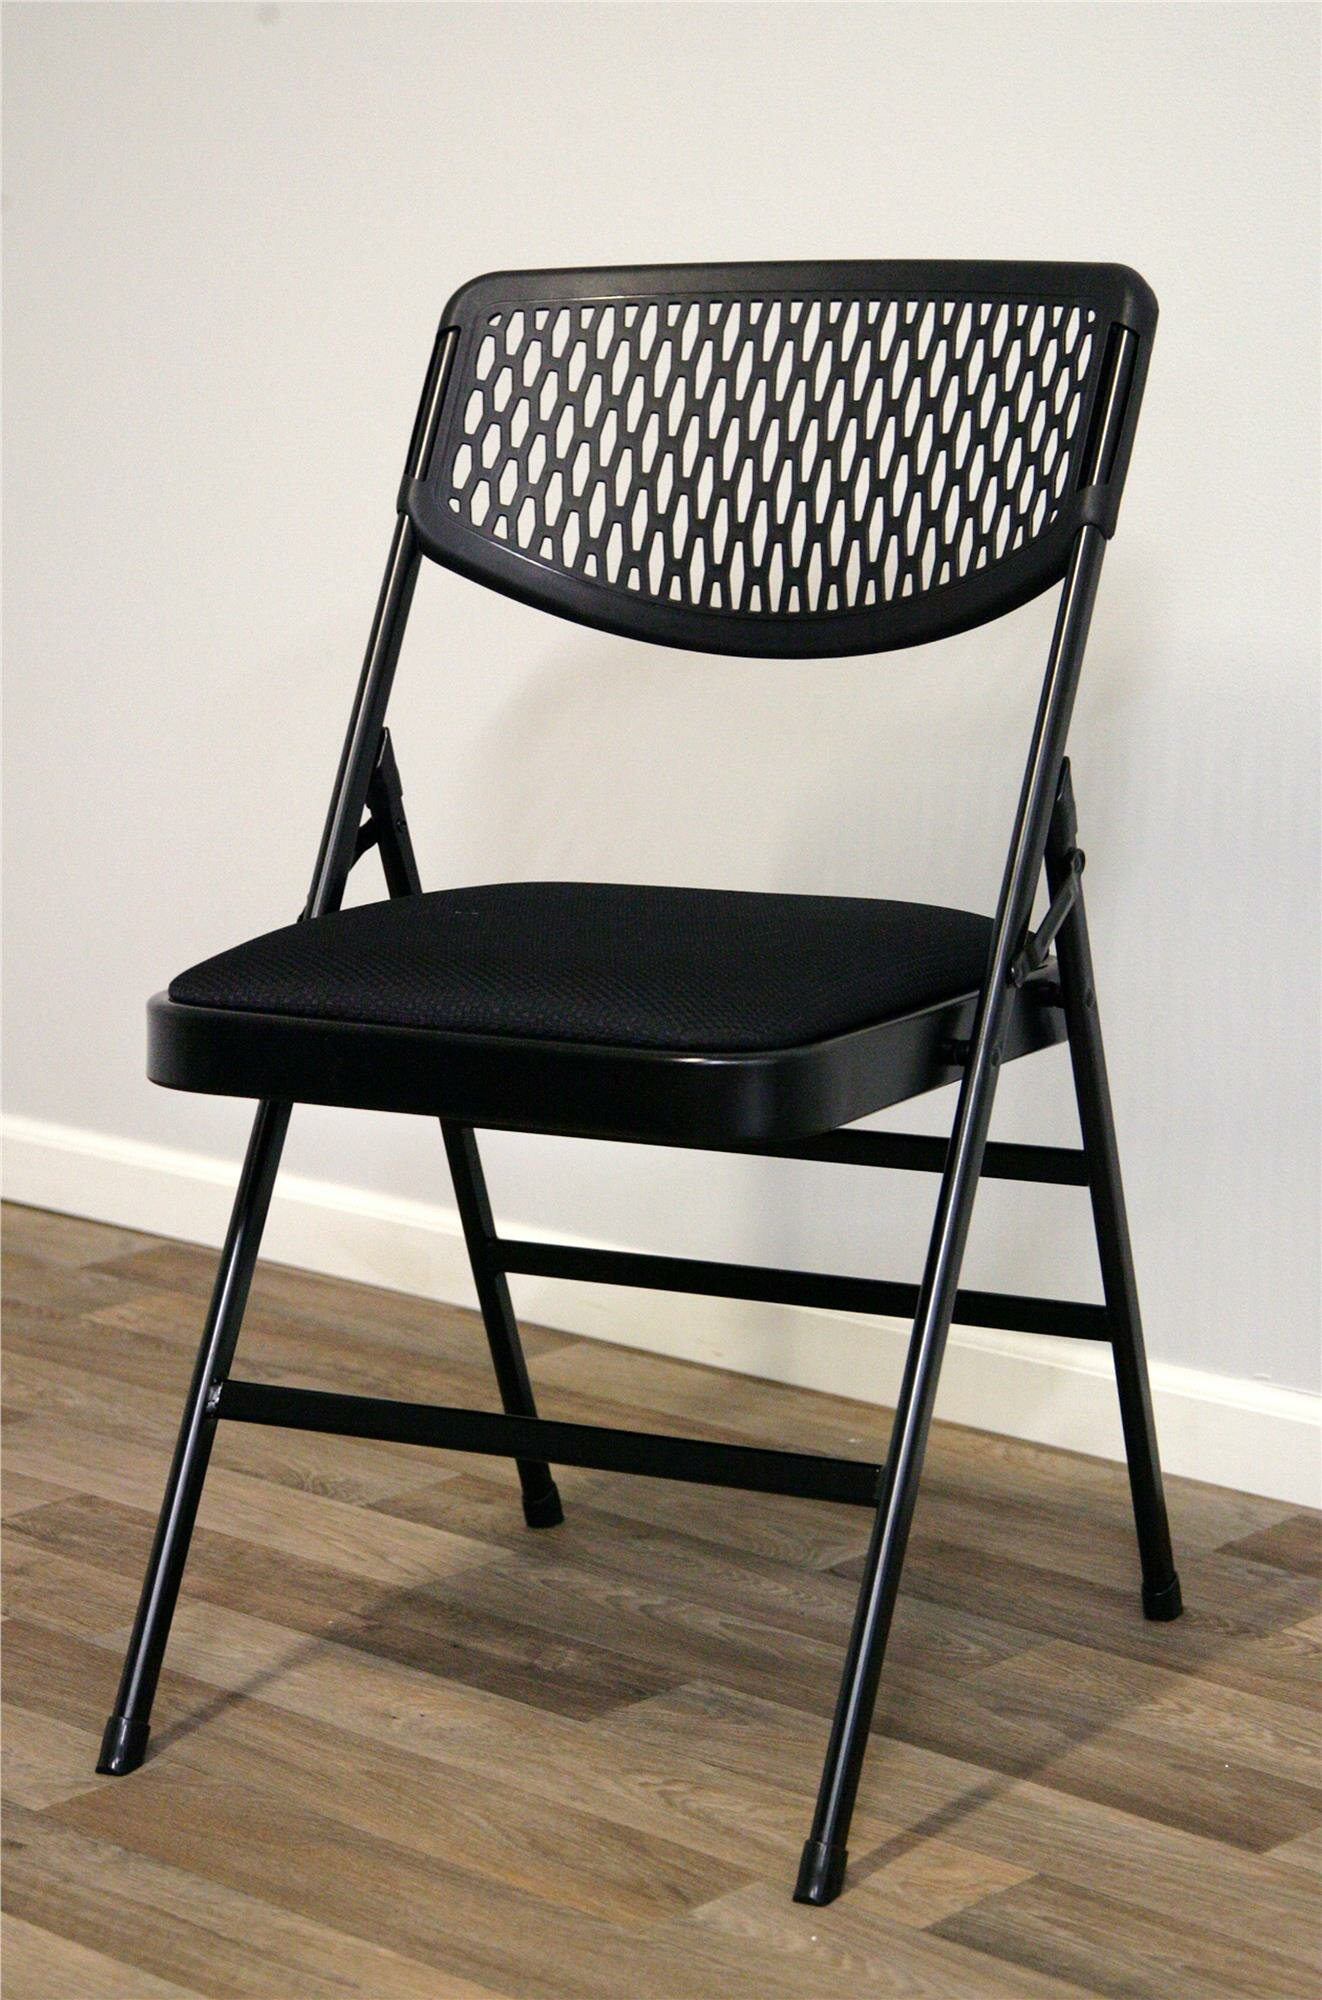 Remarkable Commercial Fabric Padded Folding Chair Pdpeps Interior Chair Design Pdpepsorg